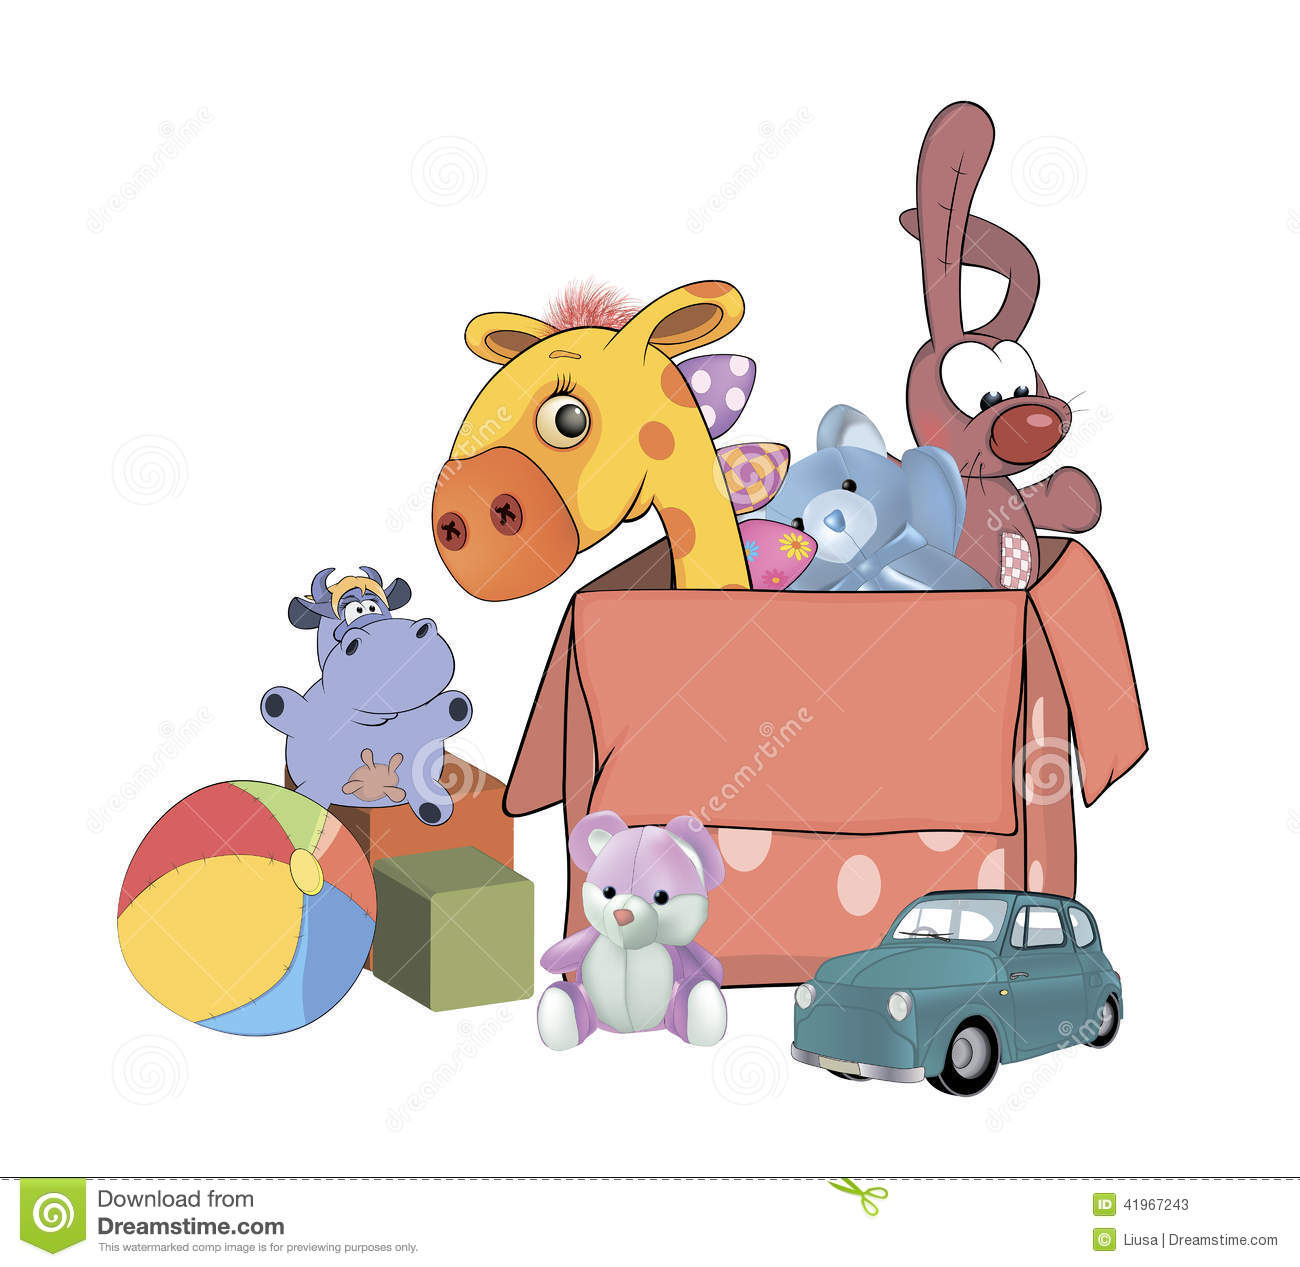 Soft Toys Cartoon : Box with toys cartoon stock illustration of